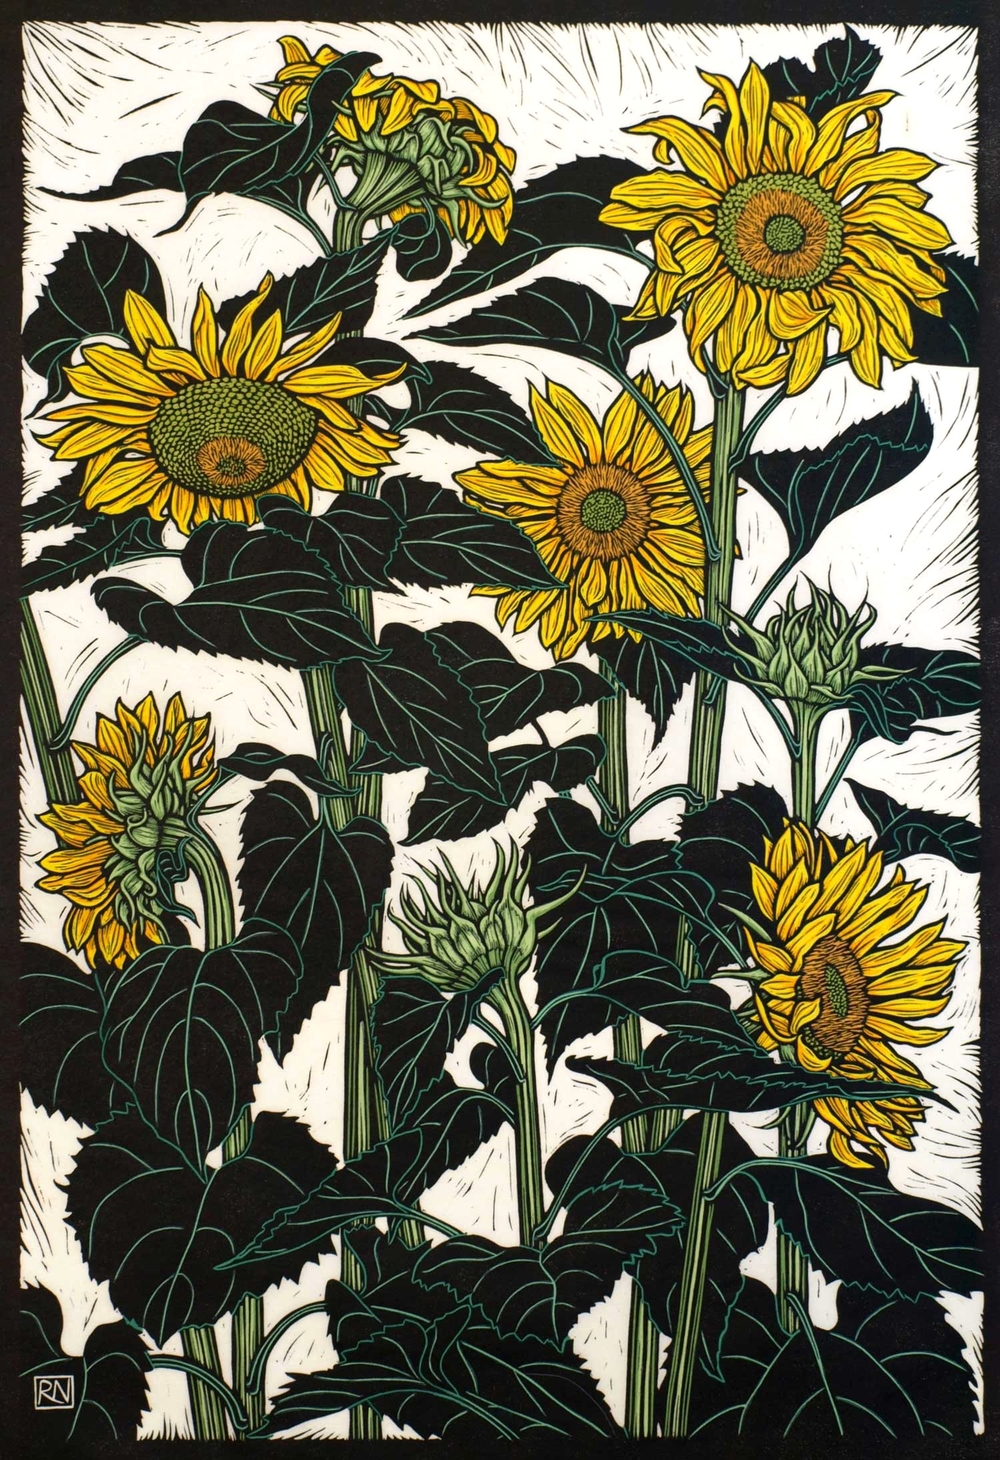 SUNFLOWERS NEWPORT  74.5 X 51 CM    EDITION OF 50  HAND COLOURED LINOCUT ON HANDMADE JAPANESE PAPER  $1,700